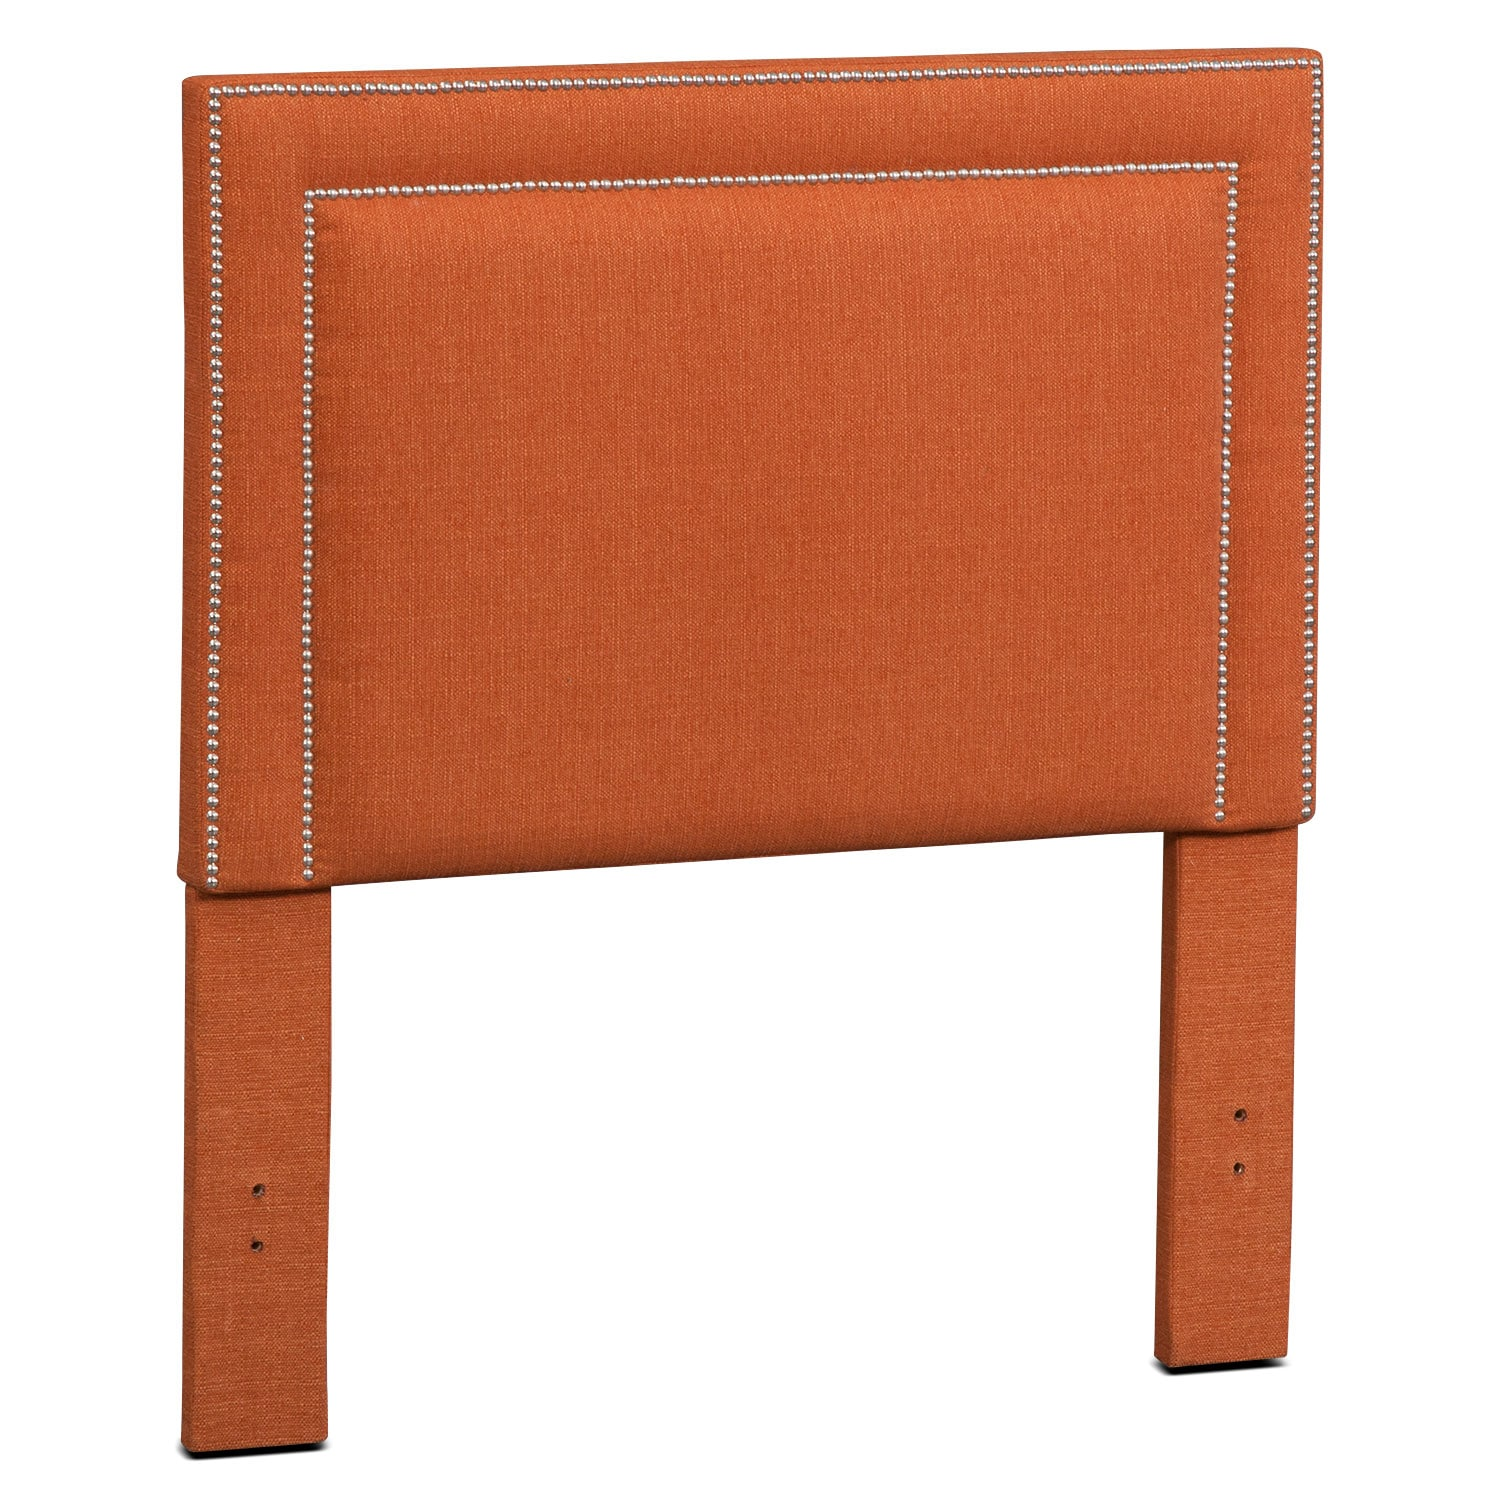 Natalie Twin Upholstered Headboard - Orange